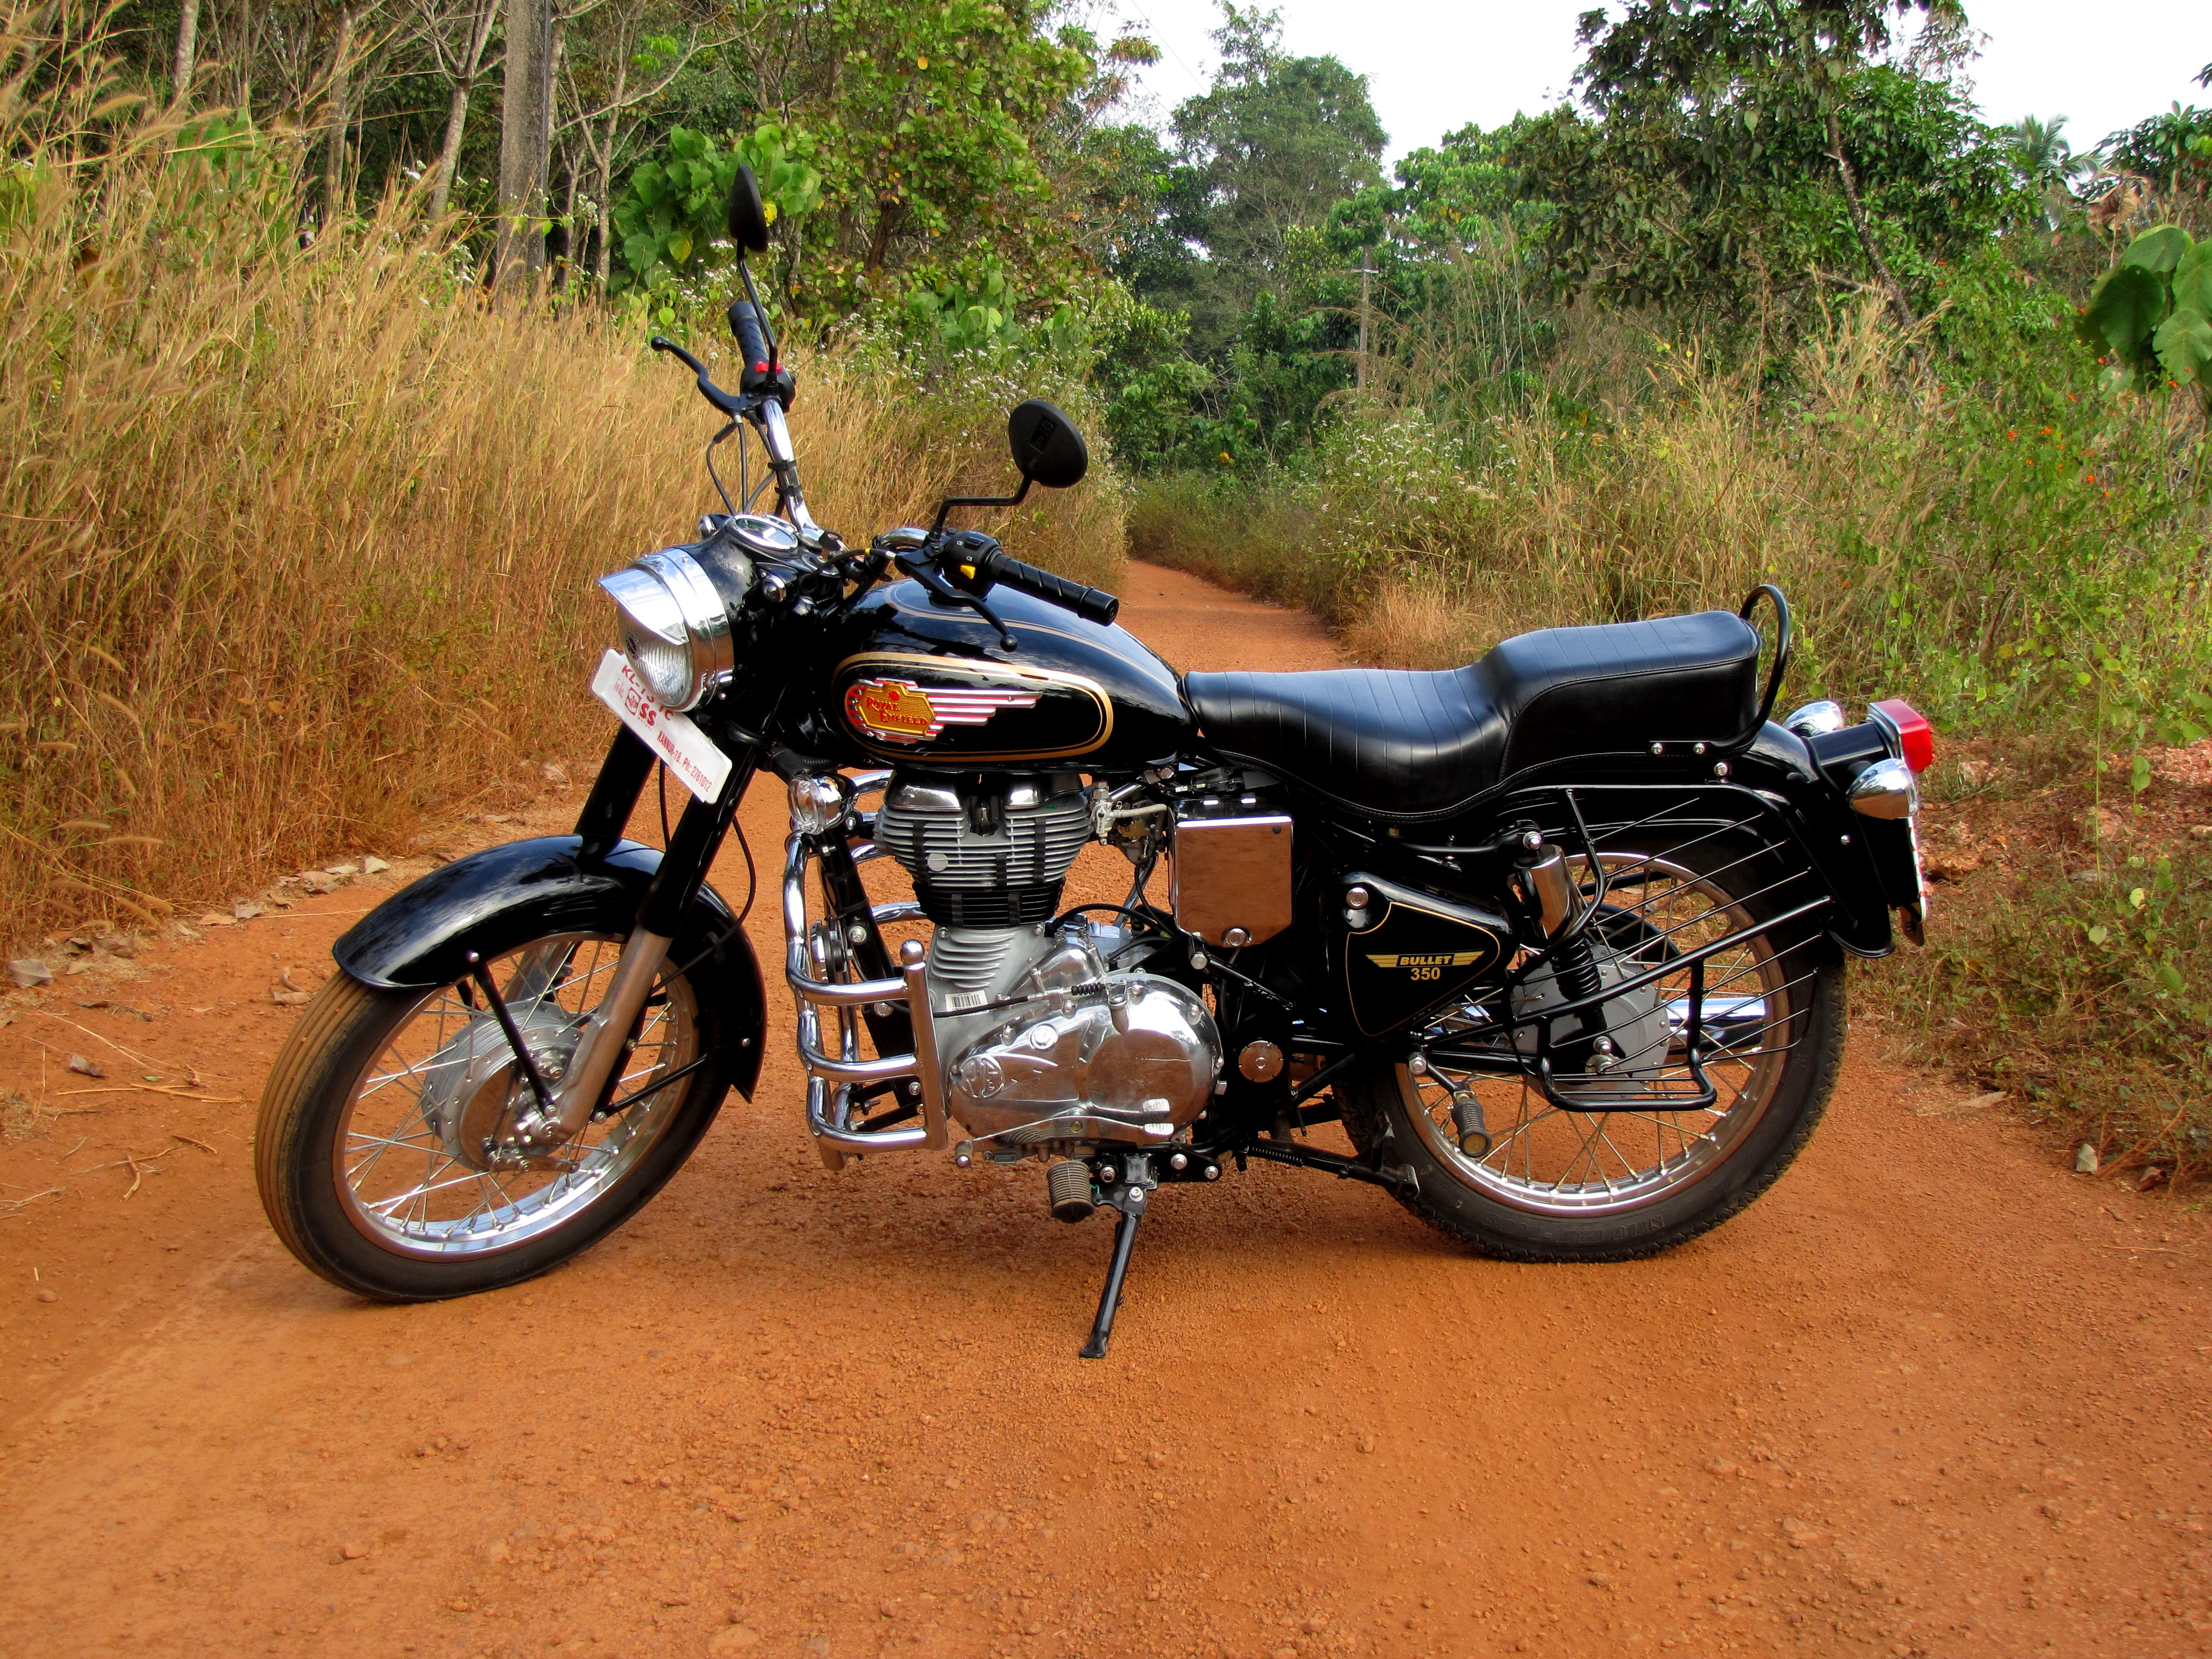 Royal Enfield Bullet 350 Army 2004 images #126525